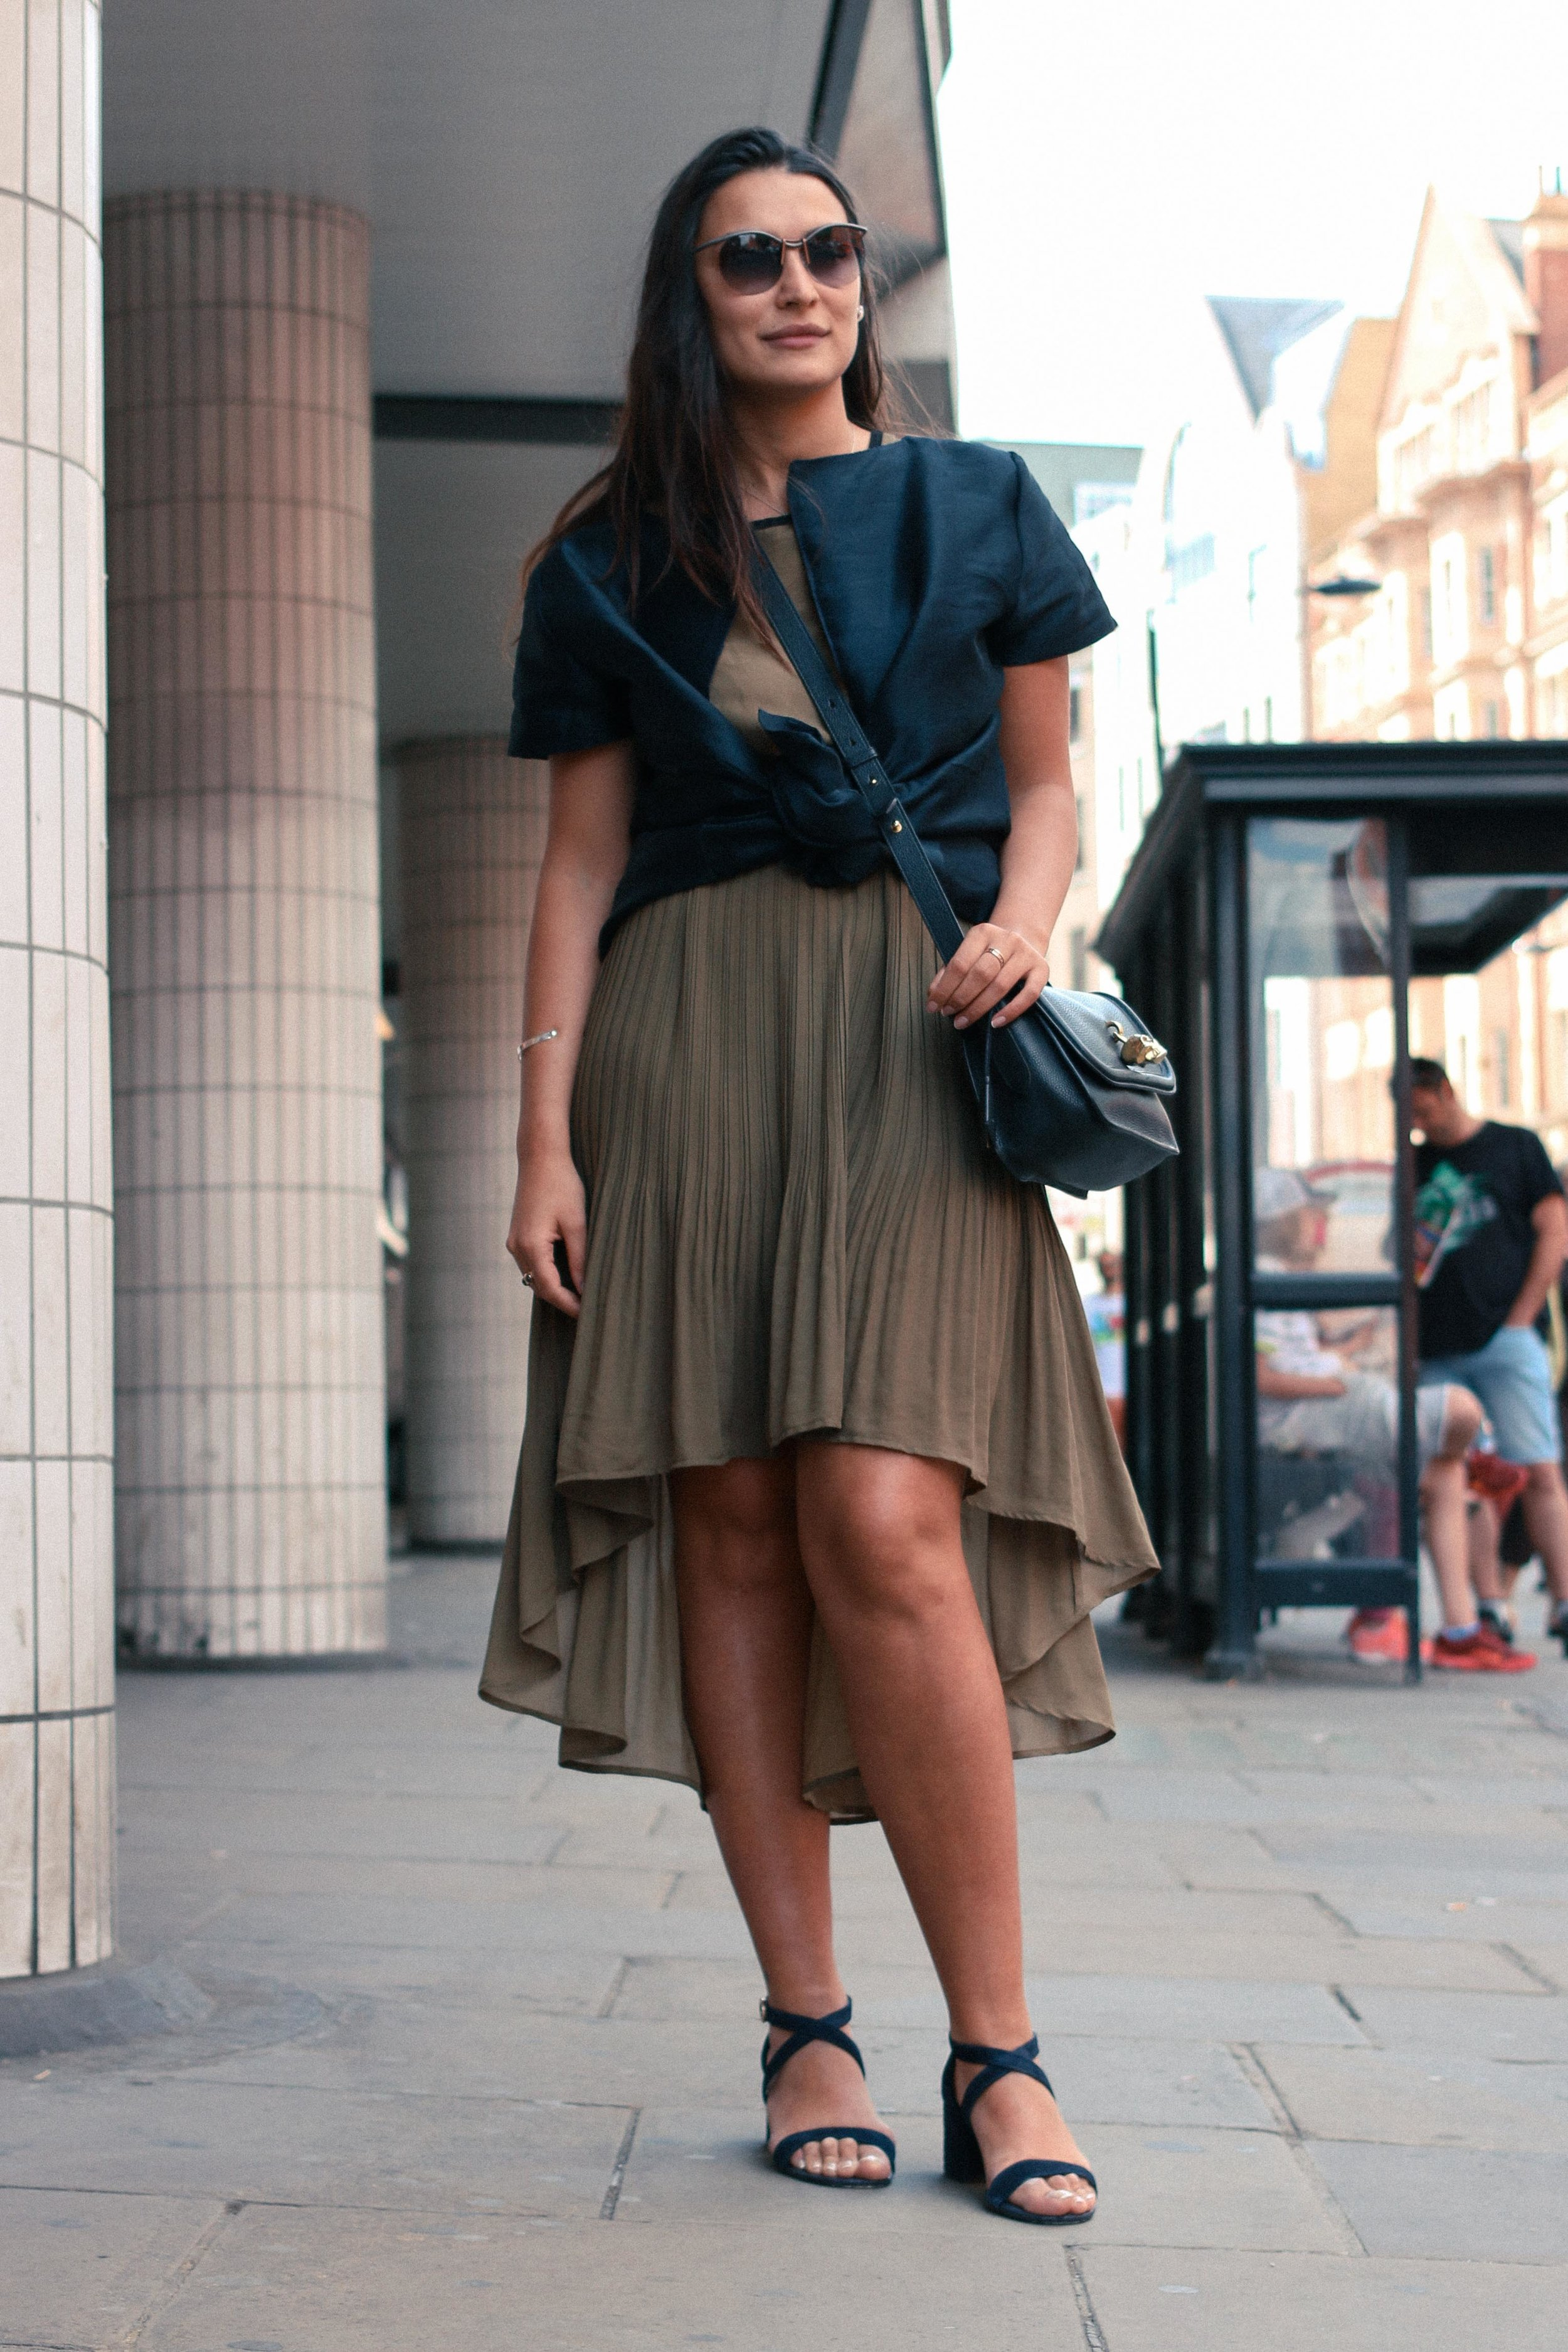 Street fashion stories_Imaginealady_friday_outfit